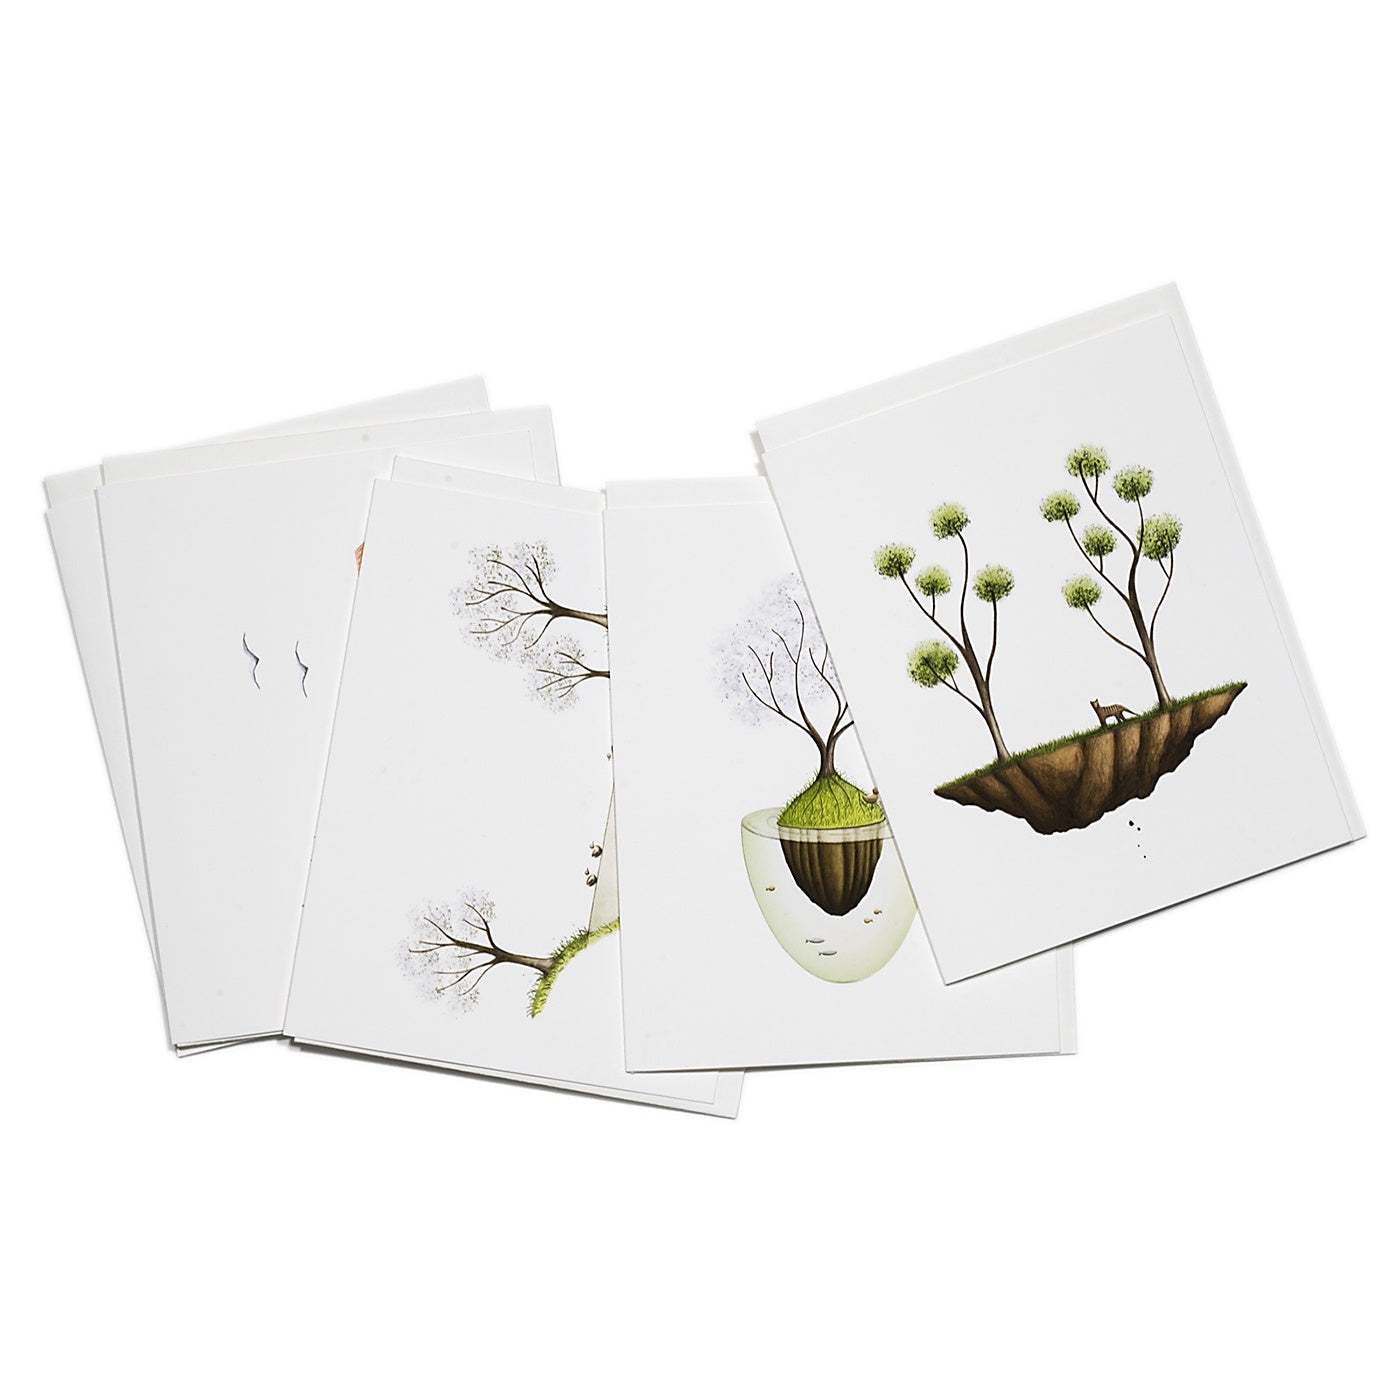 Art by Jonty - Pack of 5 Cards